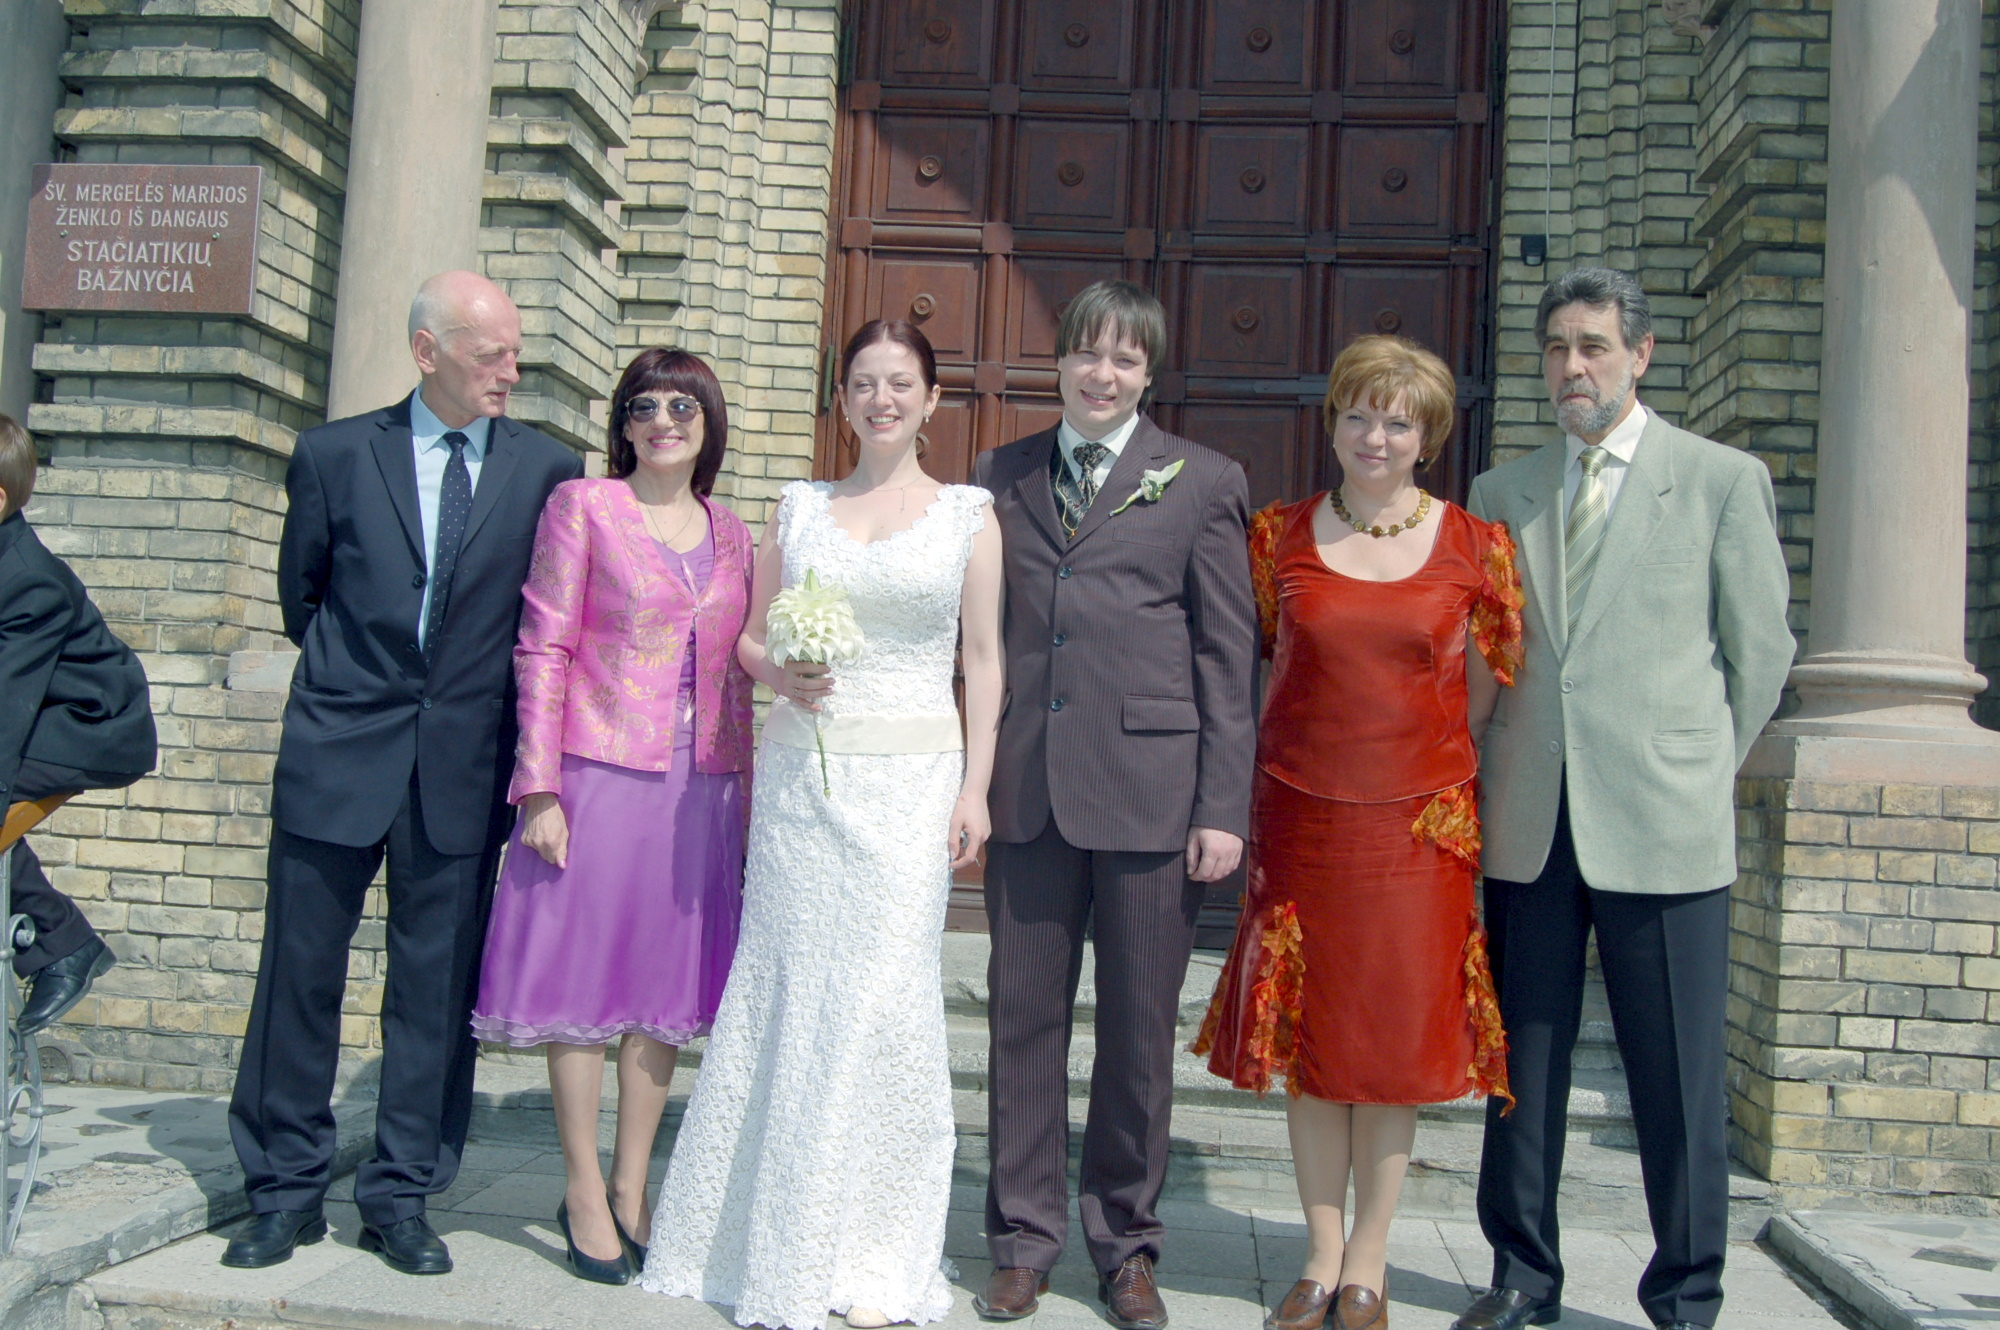 Newlyweds and their parents in front of church